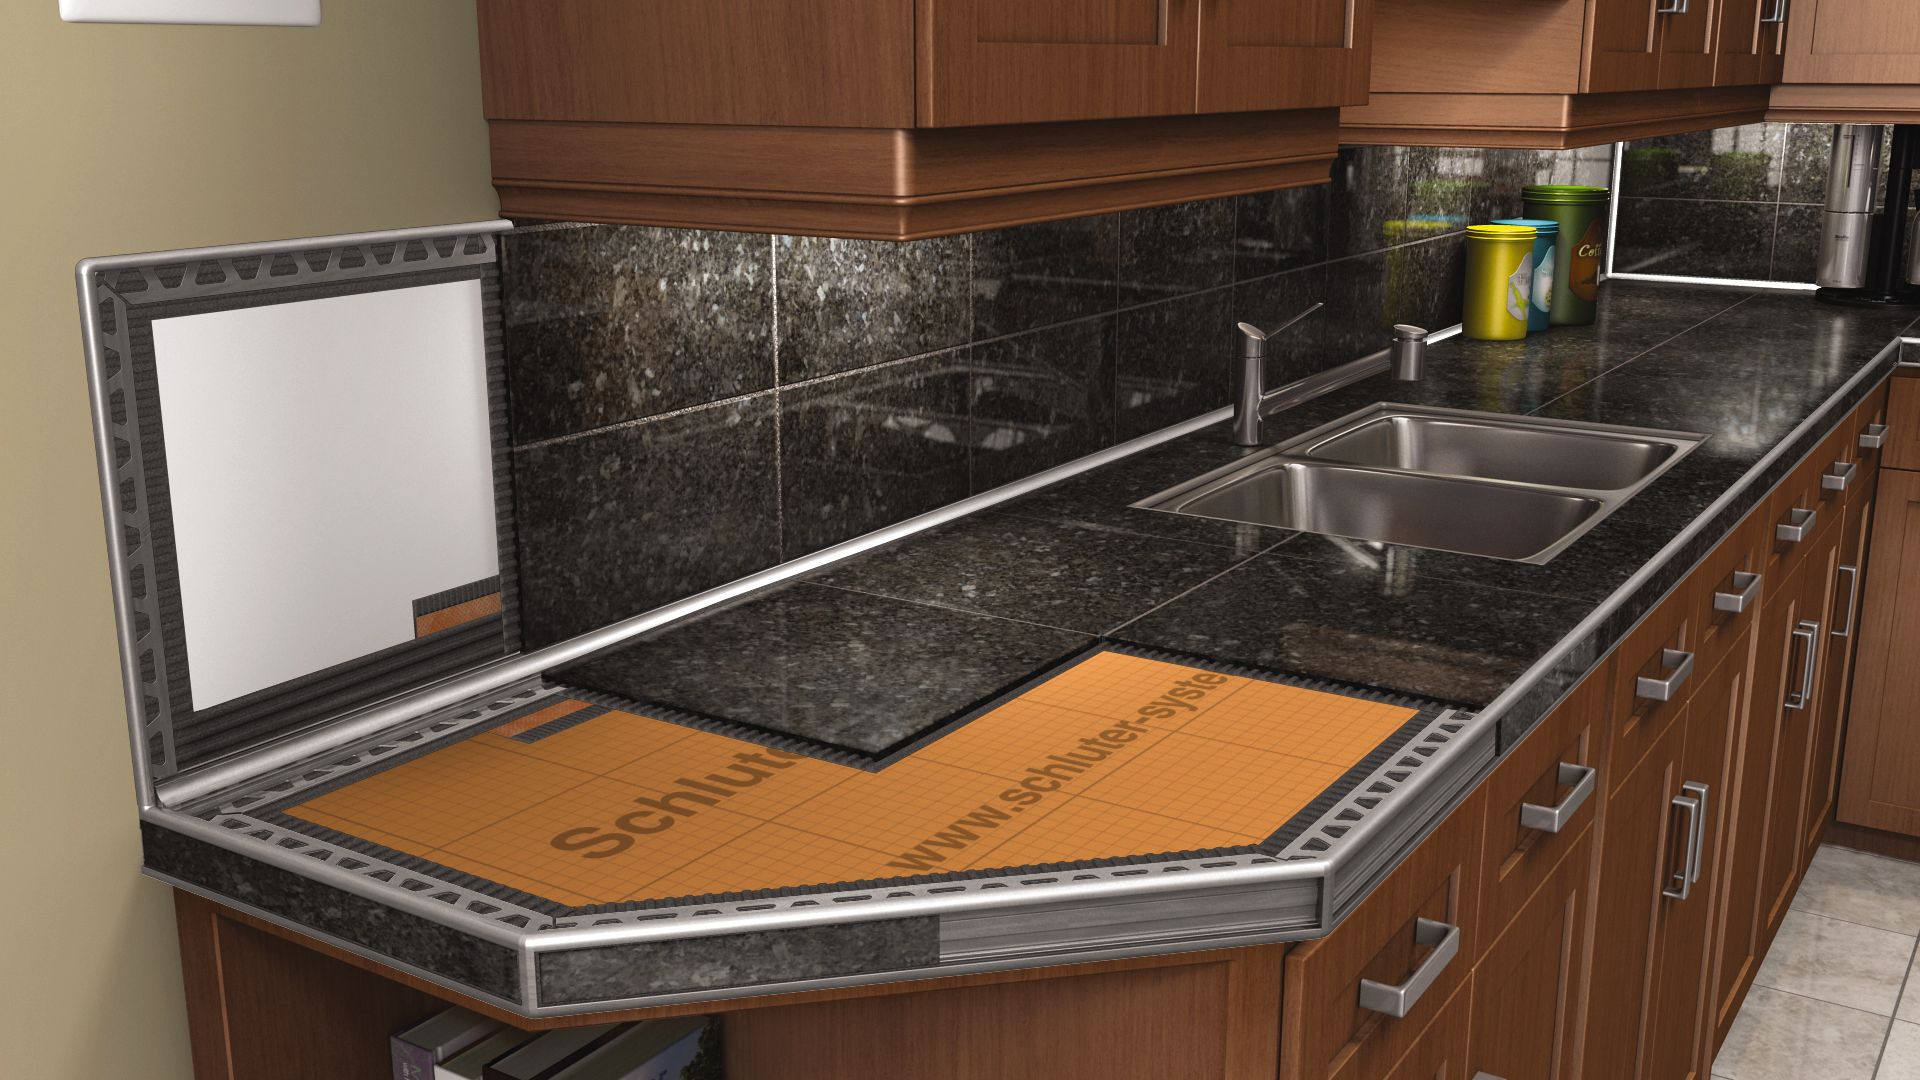 Countertop Nosing Options : Countertops schluter.com